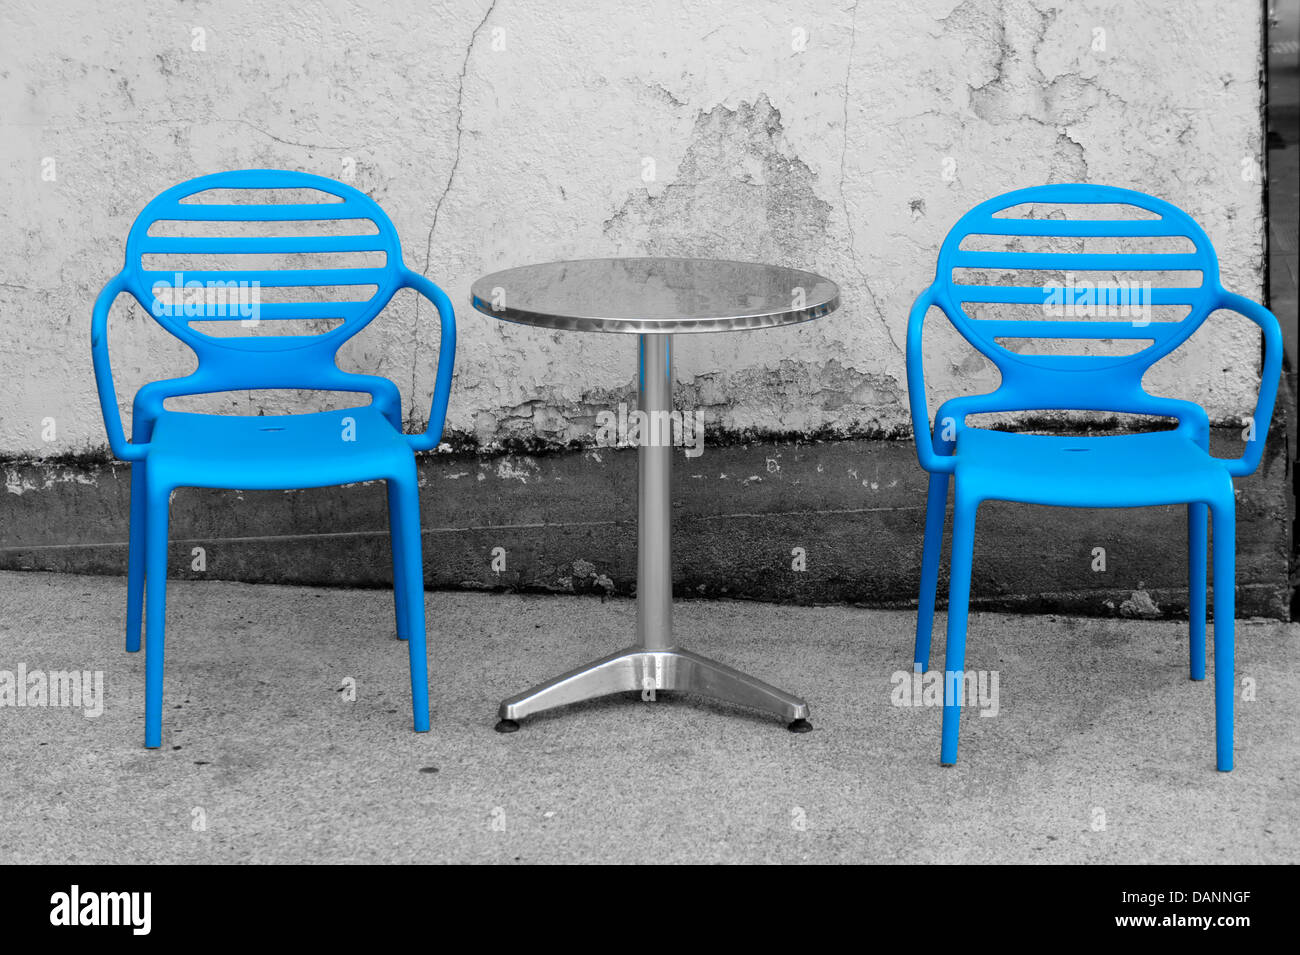 Peachy Selective Color Black And White Image Of Blue Cafe Chairs Alphanode Cool Chair Designs And Ideas Alphanodeonline